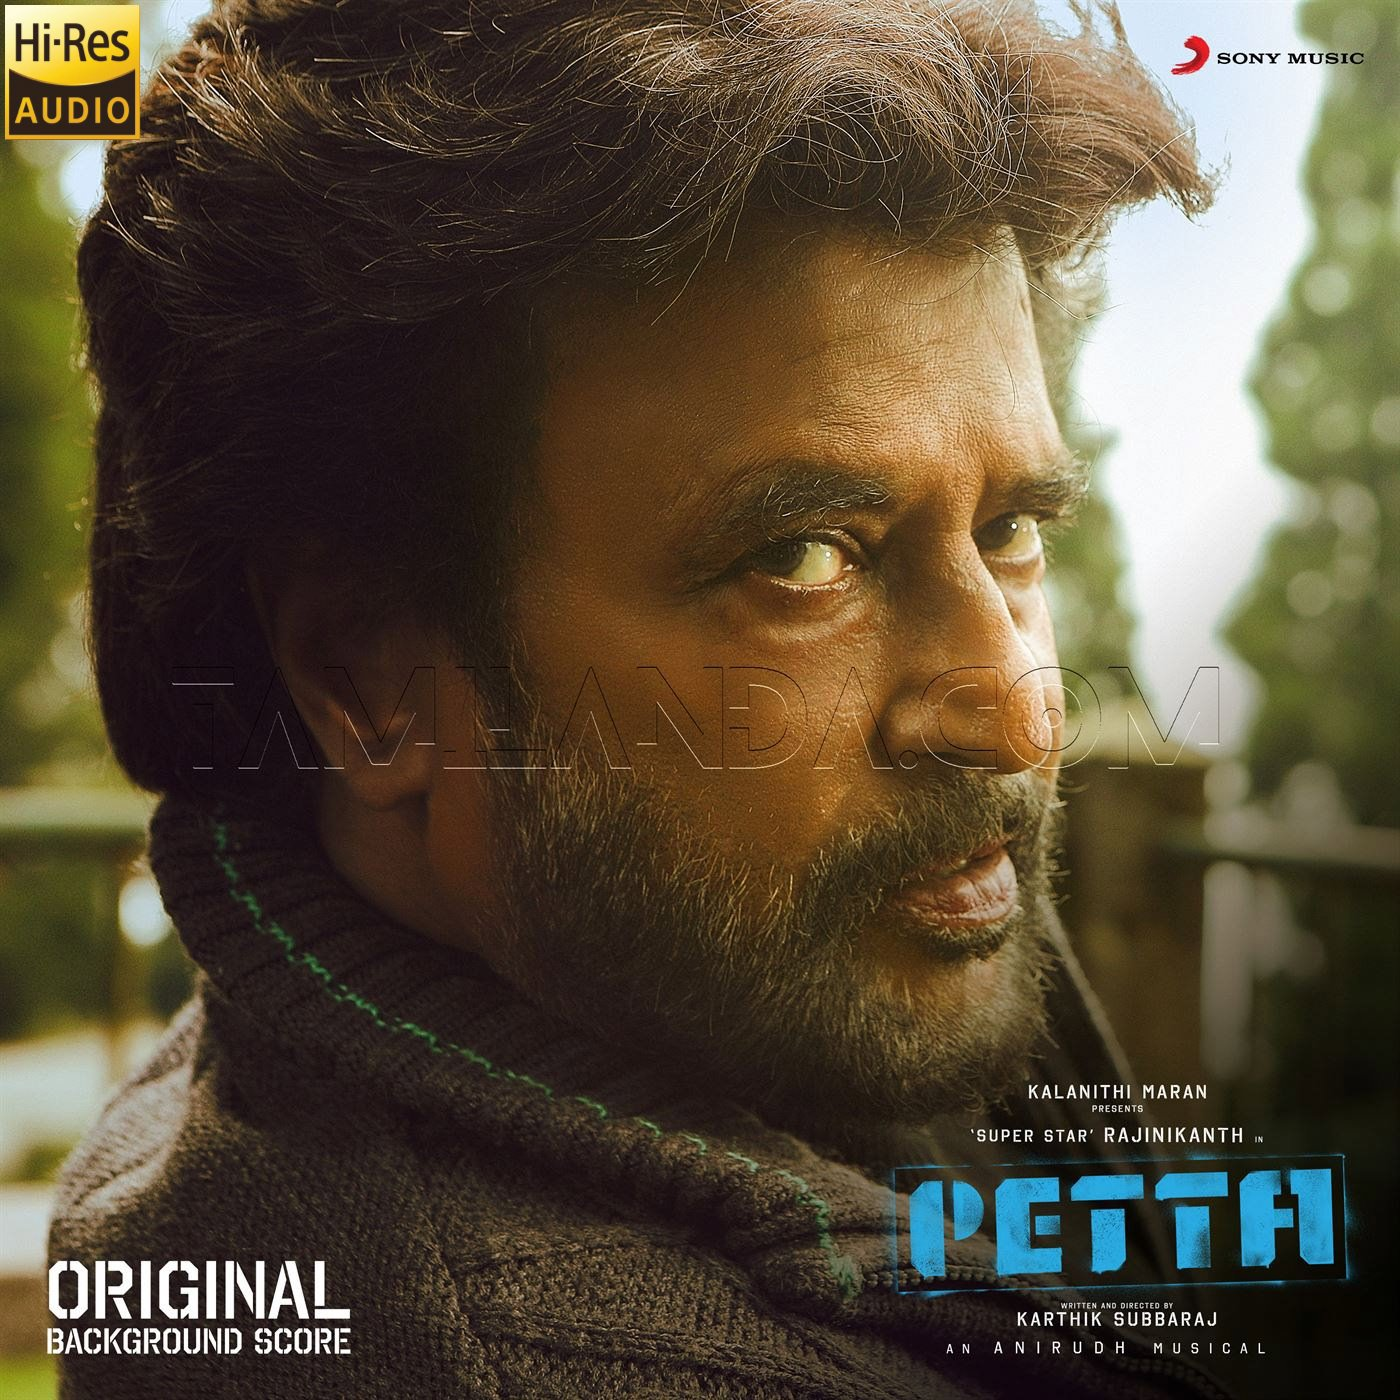 Petta (Original Background Score) FLAC Album in (24 BIT 48 KHZ)